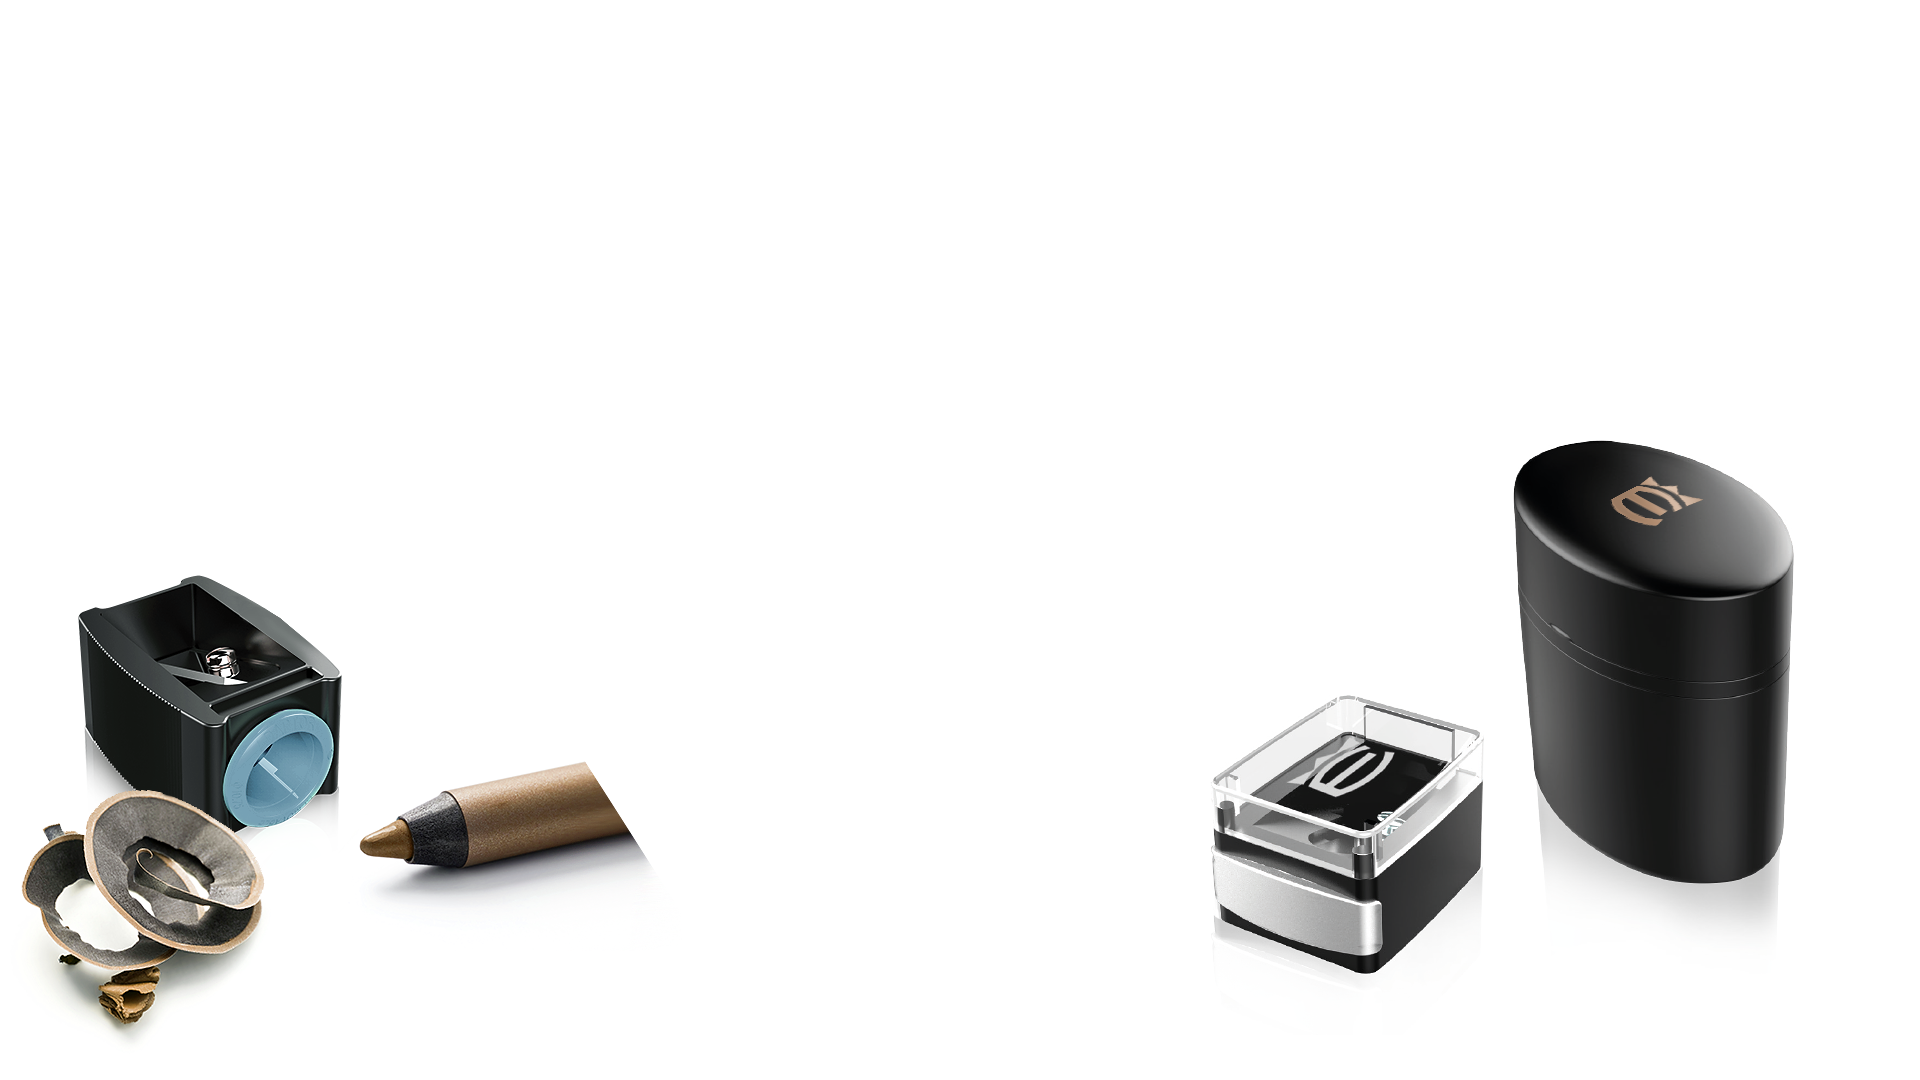 eisen cosmetic sharpener - know how